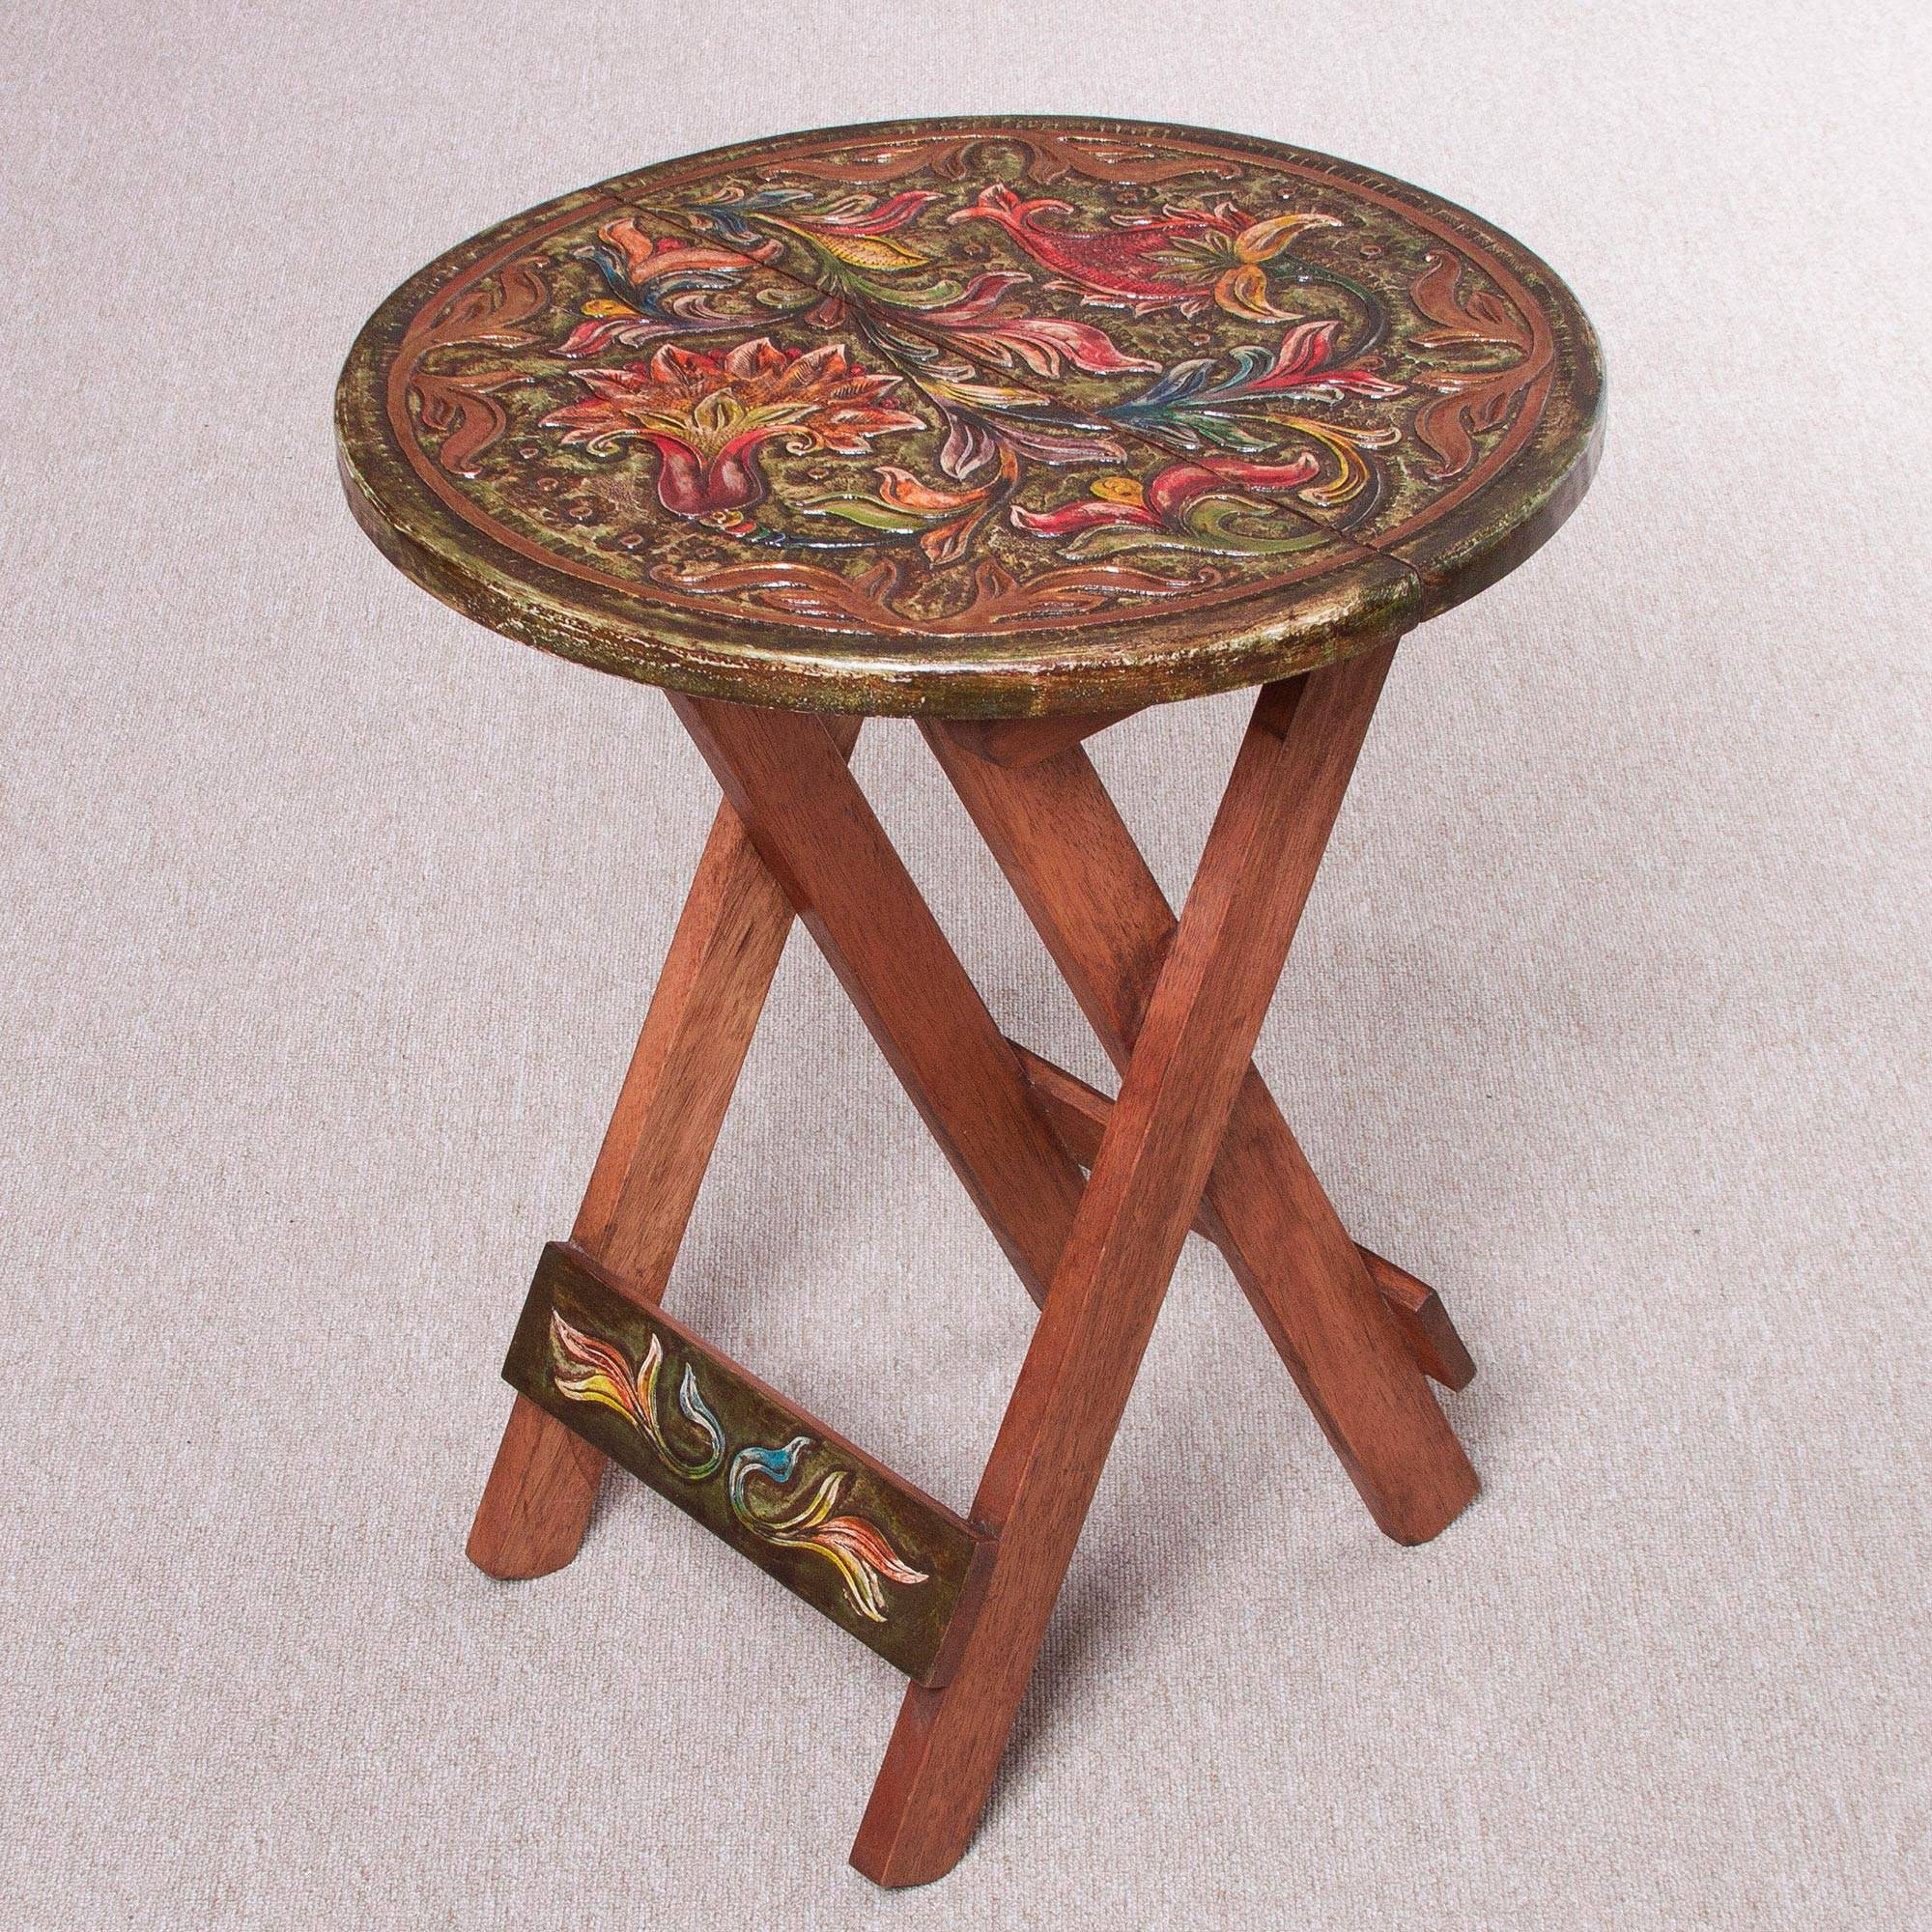 Royal flowers handcrafted wood and leather folding table from peru